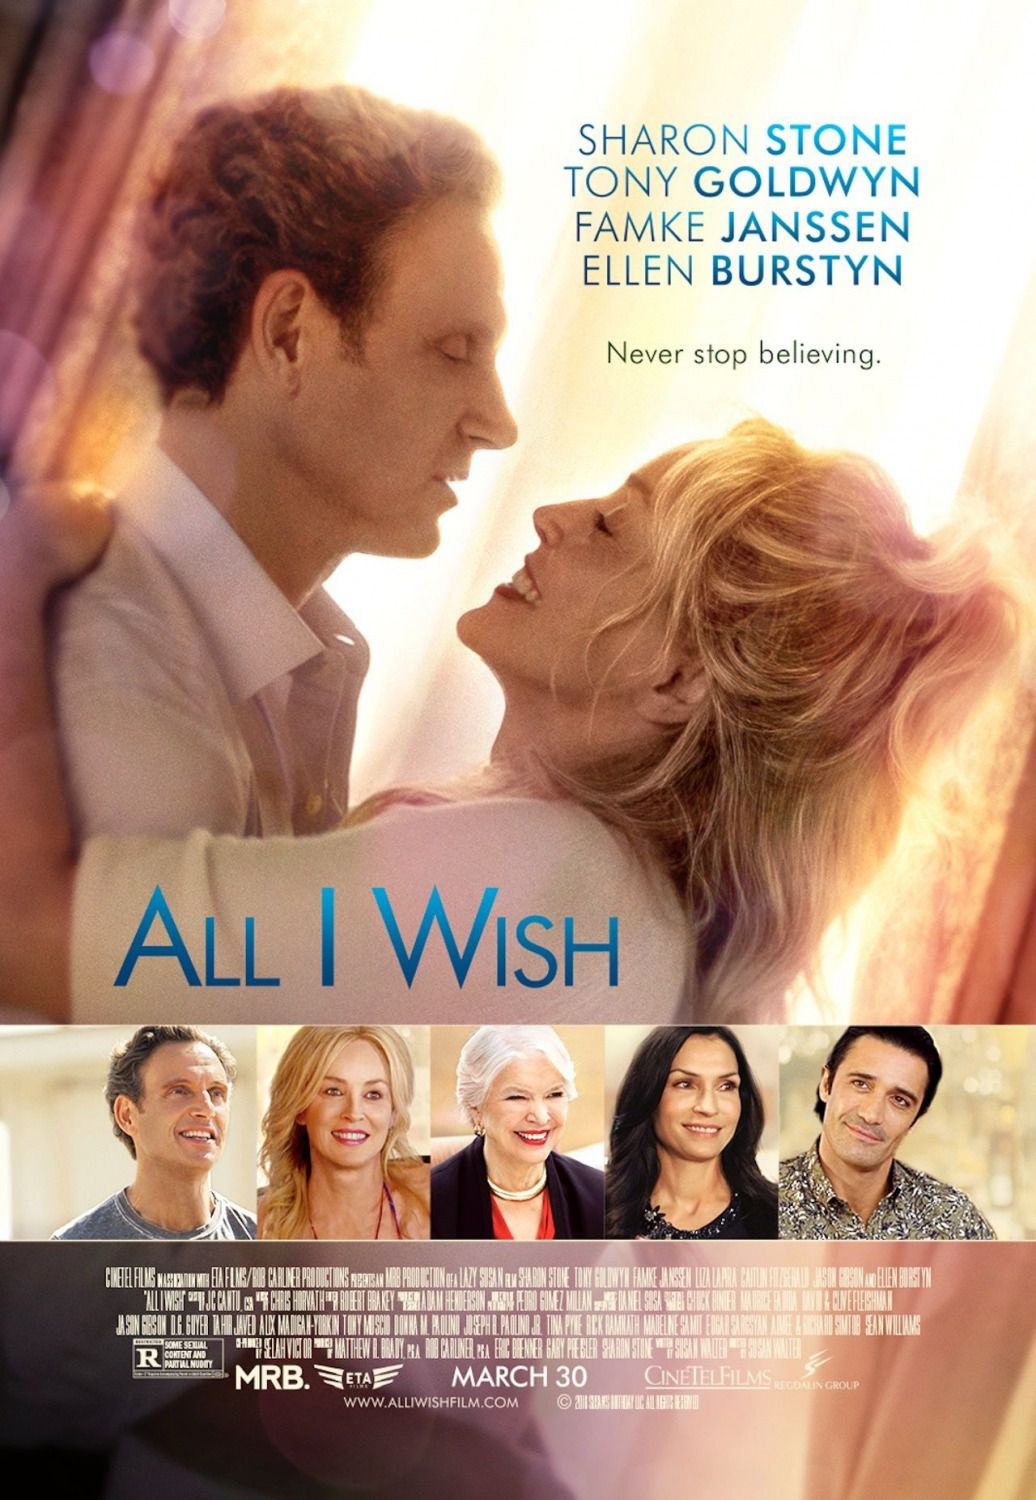 All I Wish - Cast: Sharon Stone, Tony Goldwyn, Ellen Burstyn, Famke Janssen - poster 2018